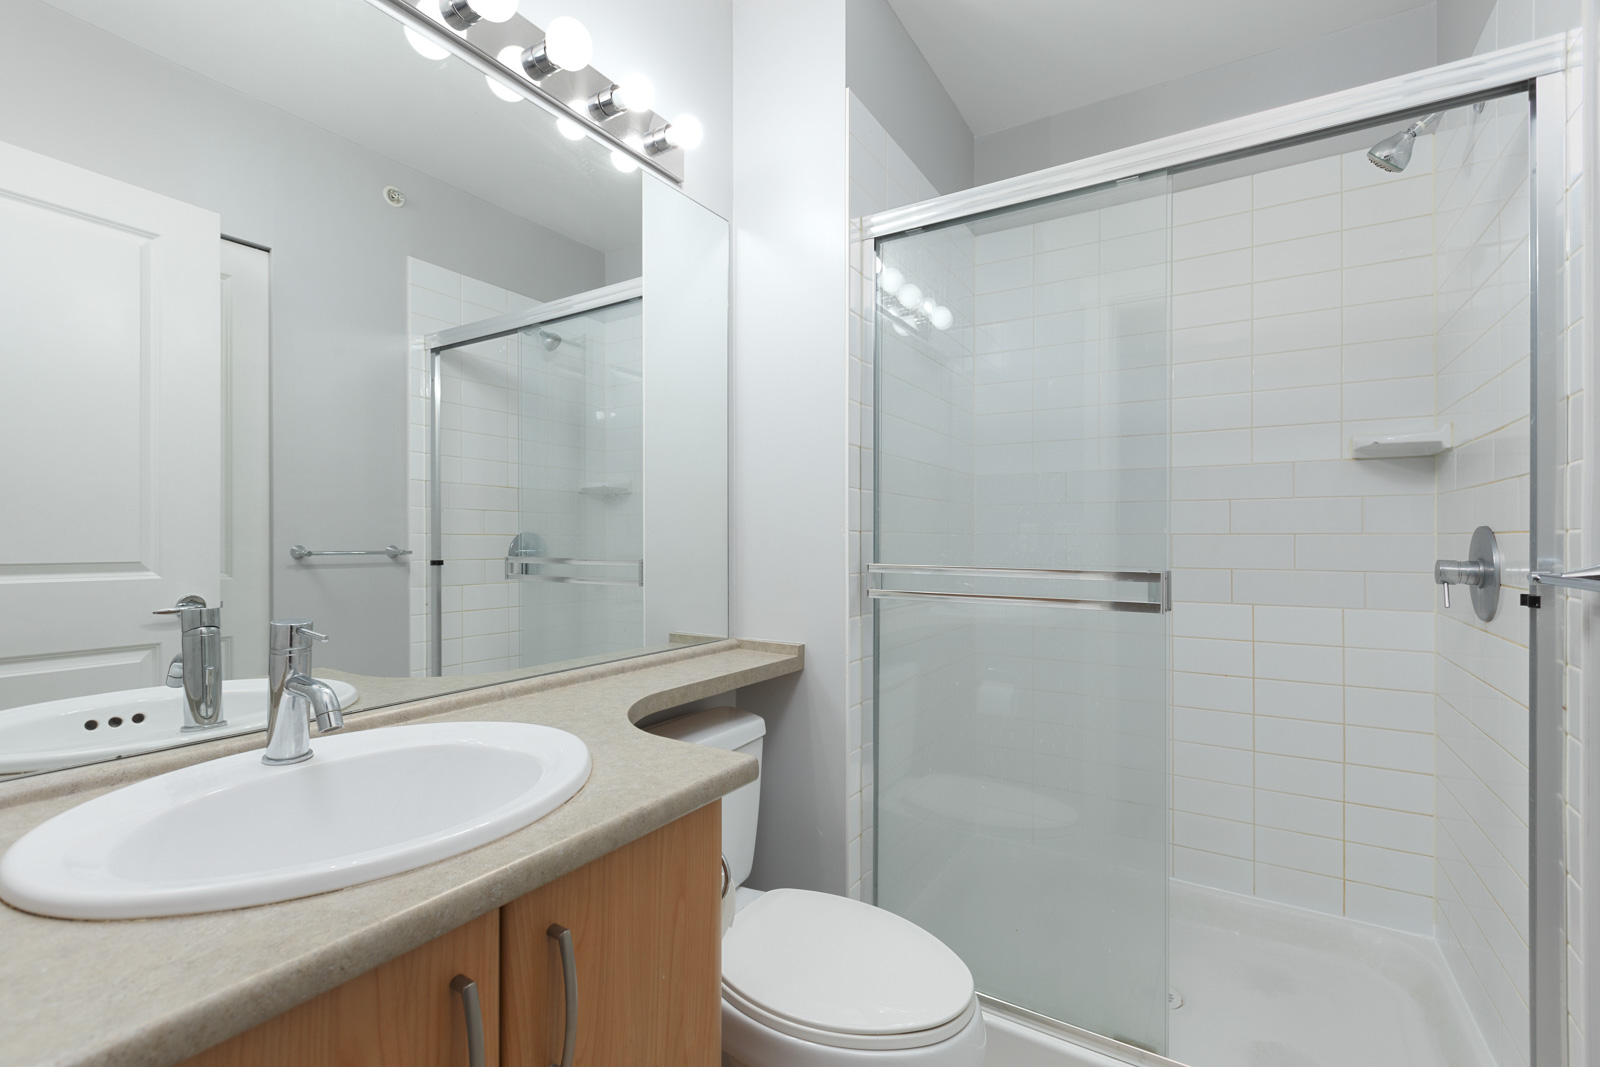 washroom with mirror and white walls with shower